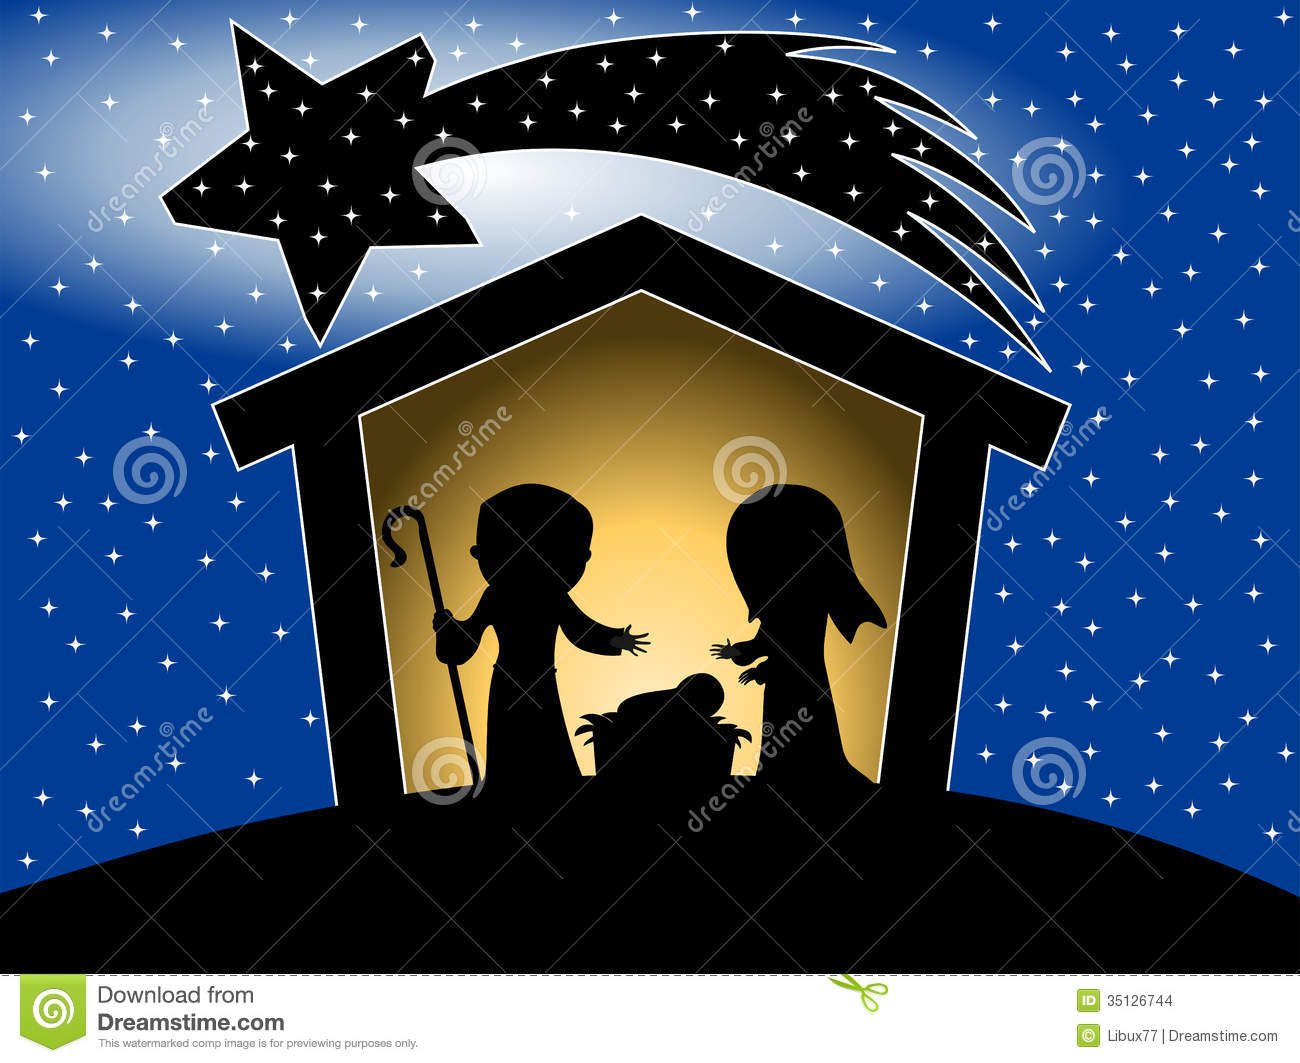 Christmas Nativity Scene Silhouette Stock Vector